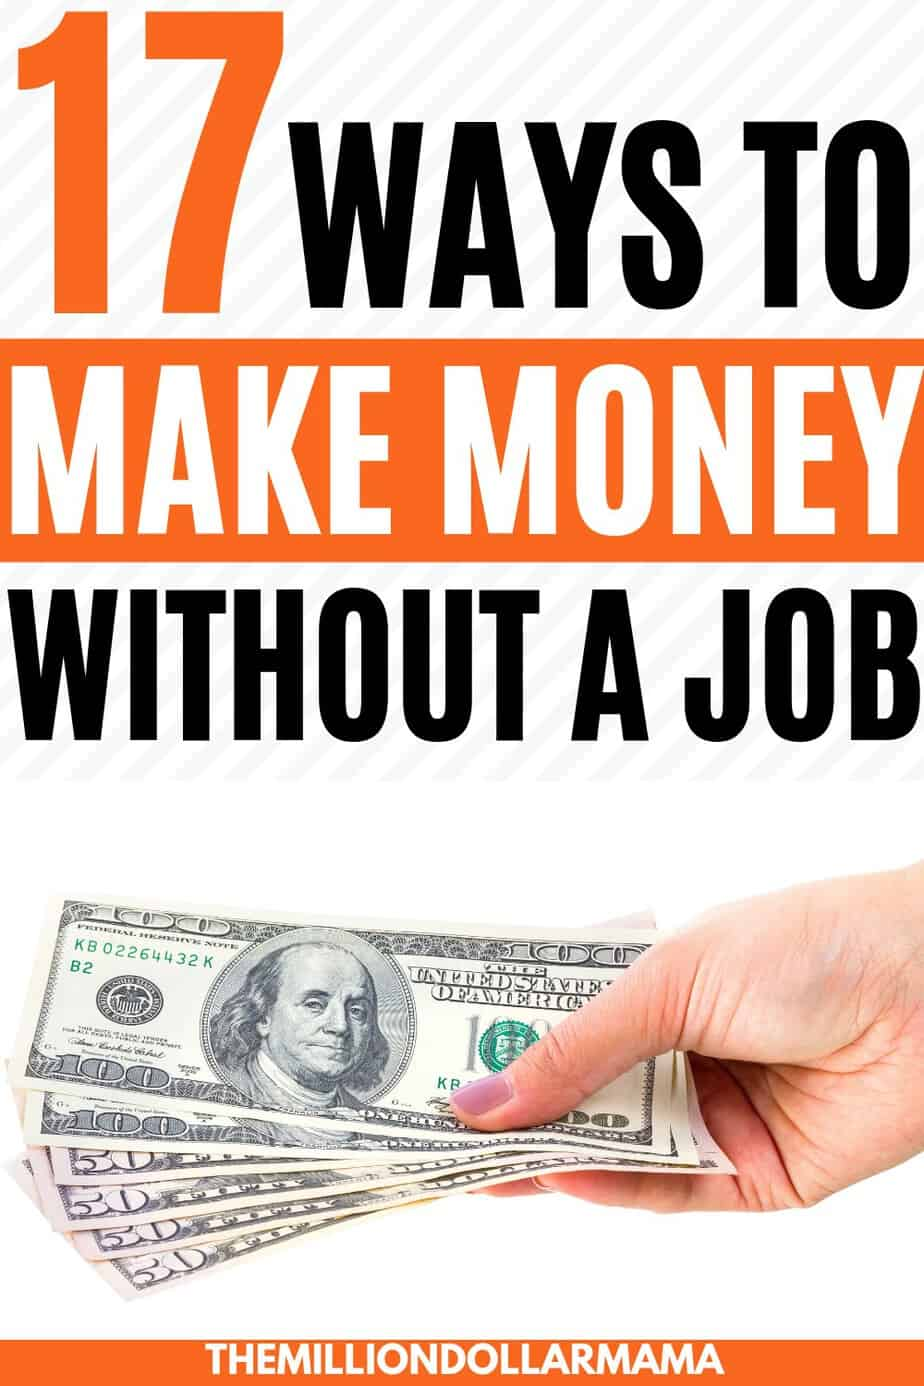 How to make money without a job - click through to learn 17 legitimate ways to make money without a job